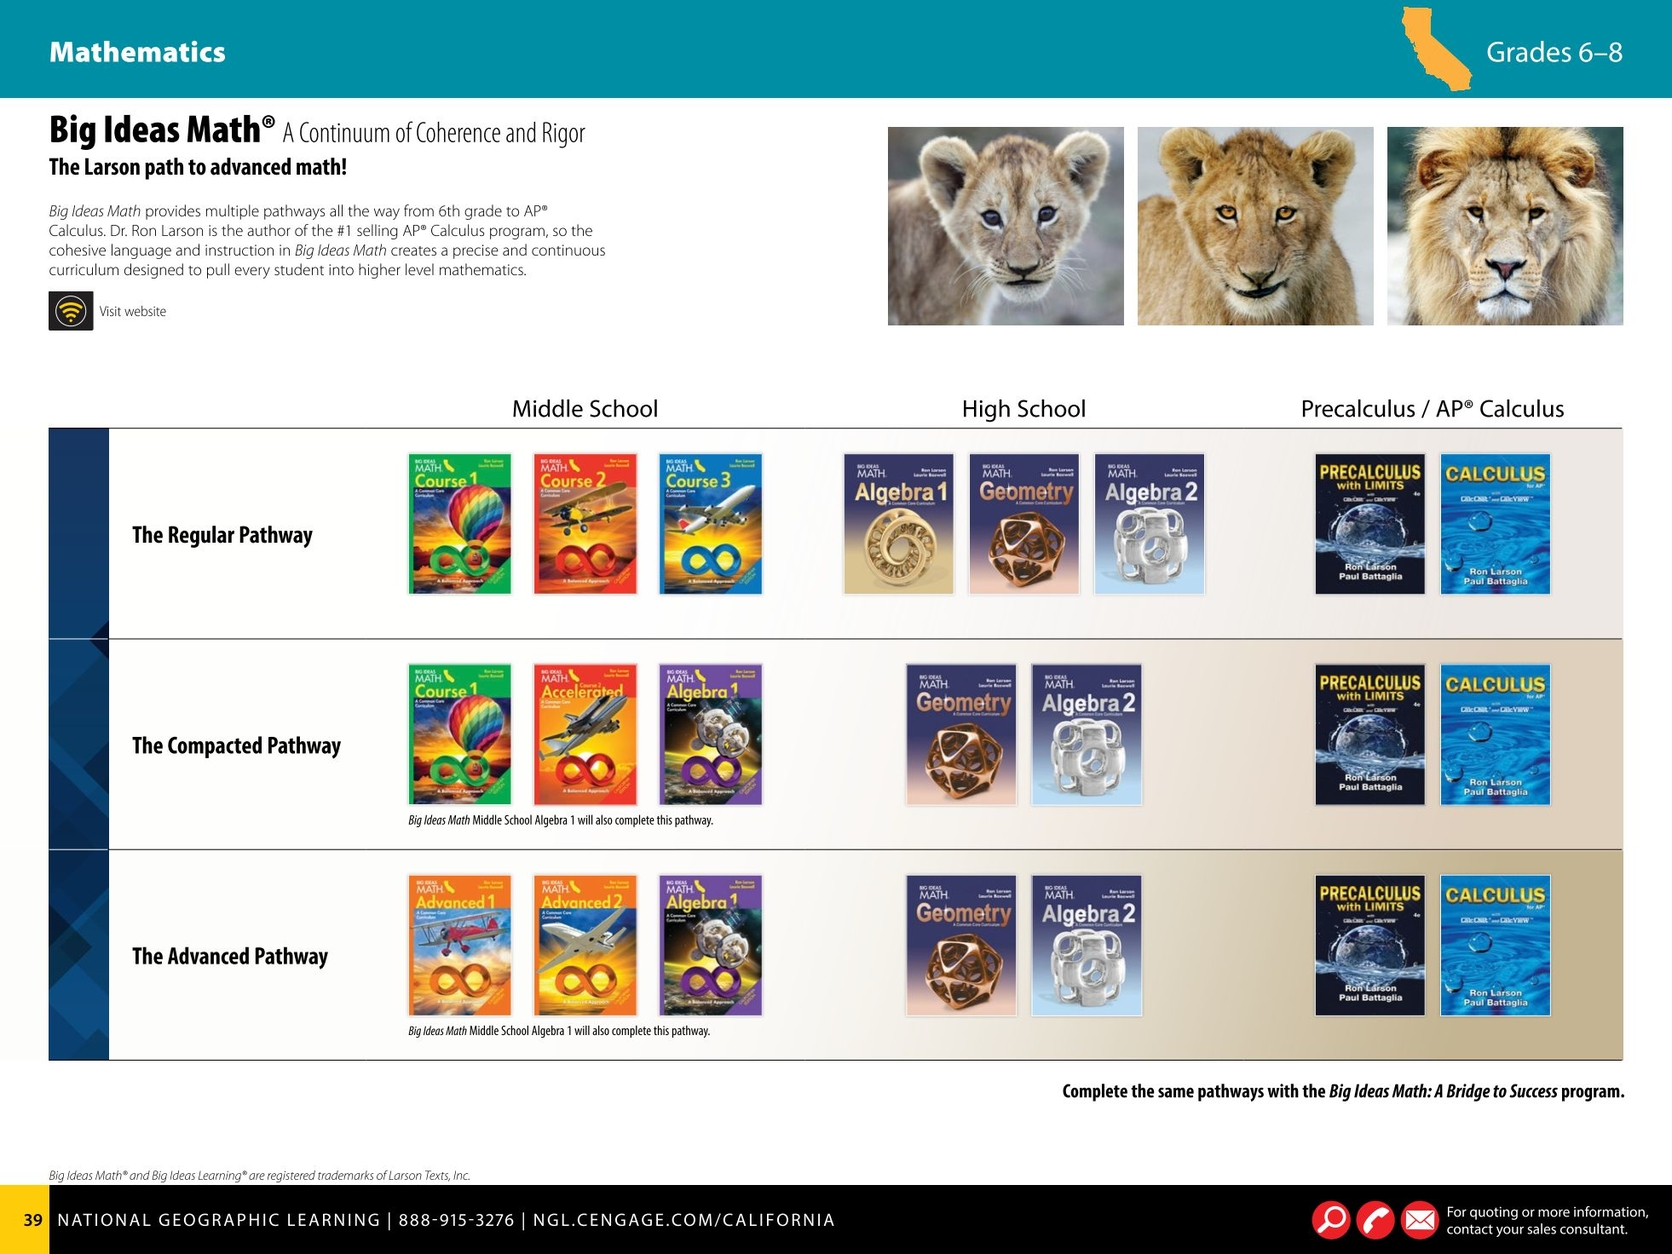 California Grades K-8 Catalog - 2017-2018